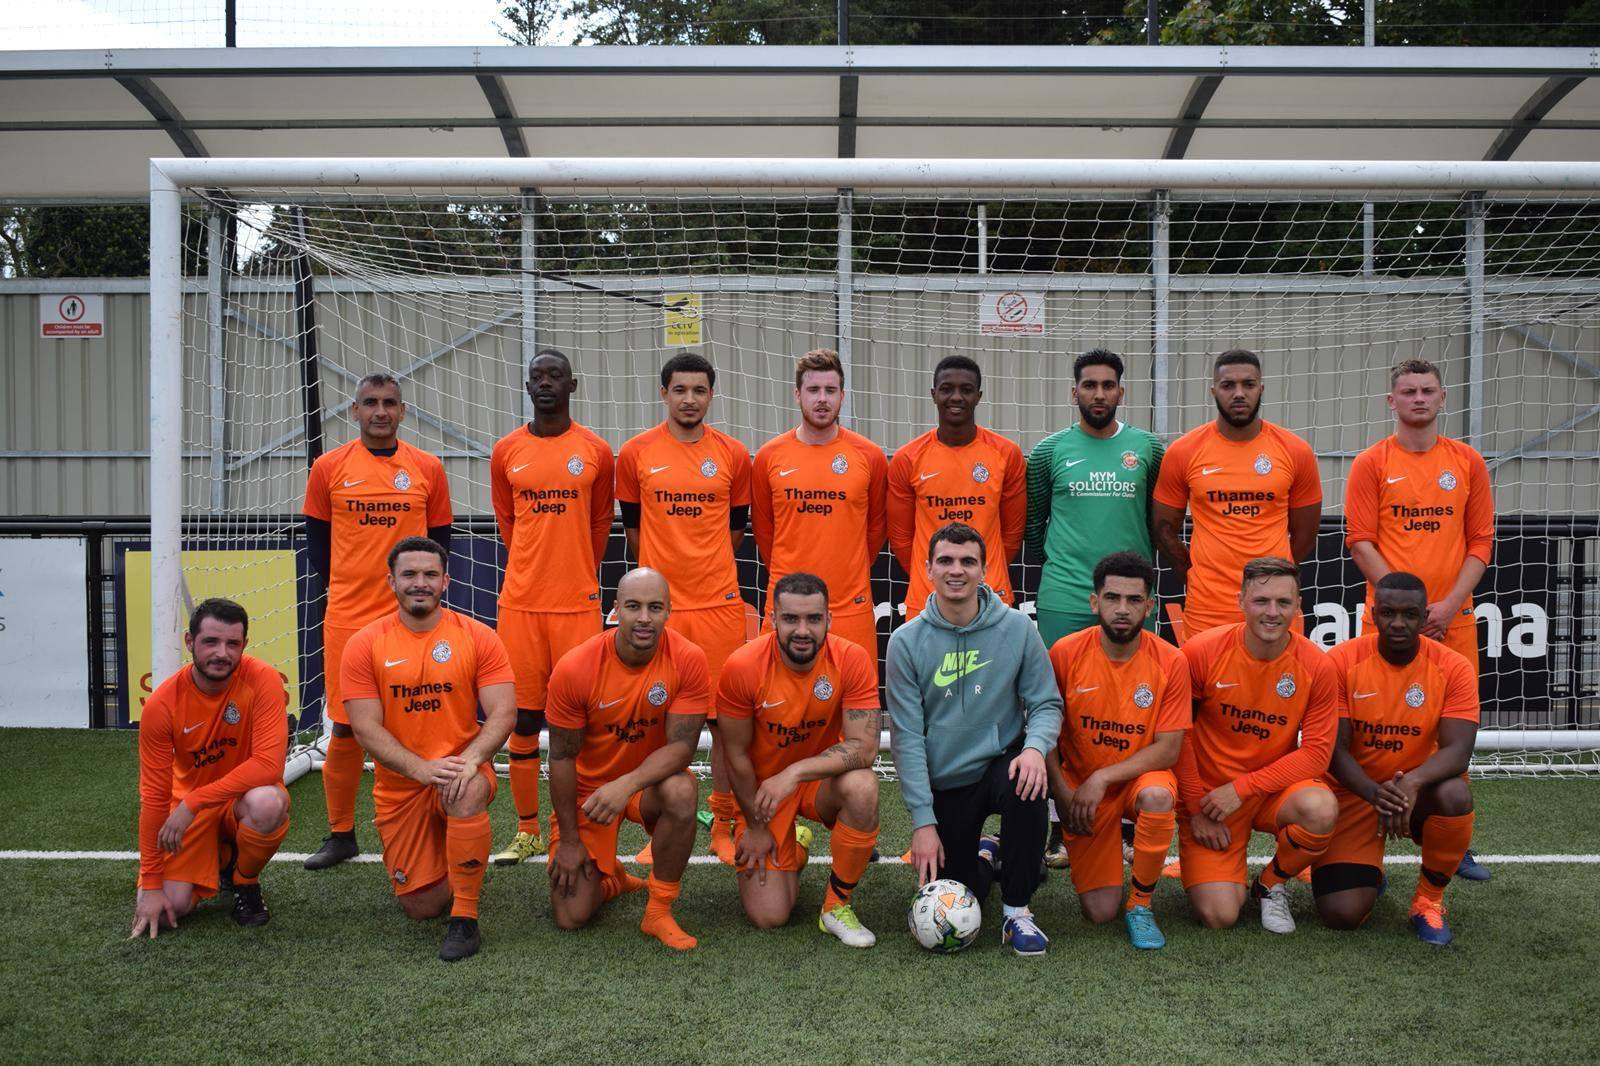 Real Milan suffered an 8-1 defeat away at Langley Galaxy in Division One of the Thames Valley Sunday League.